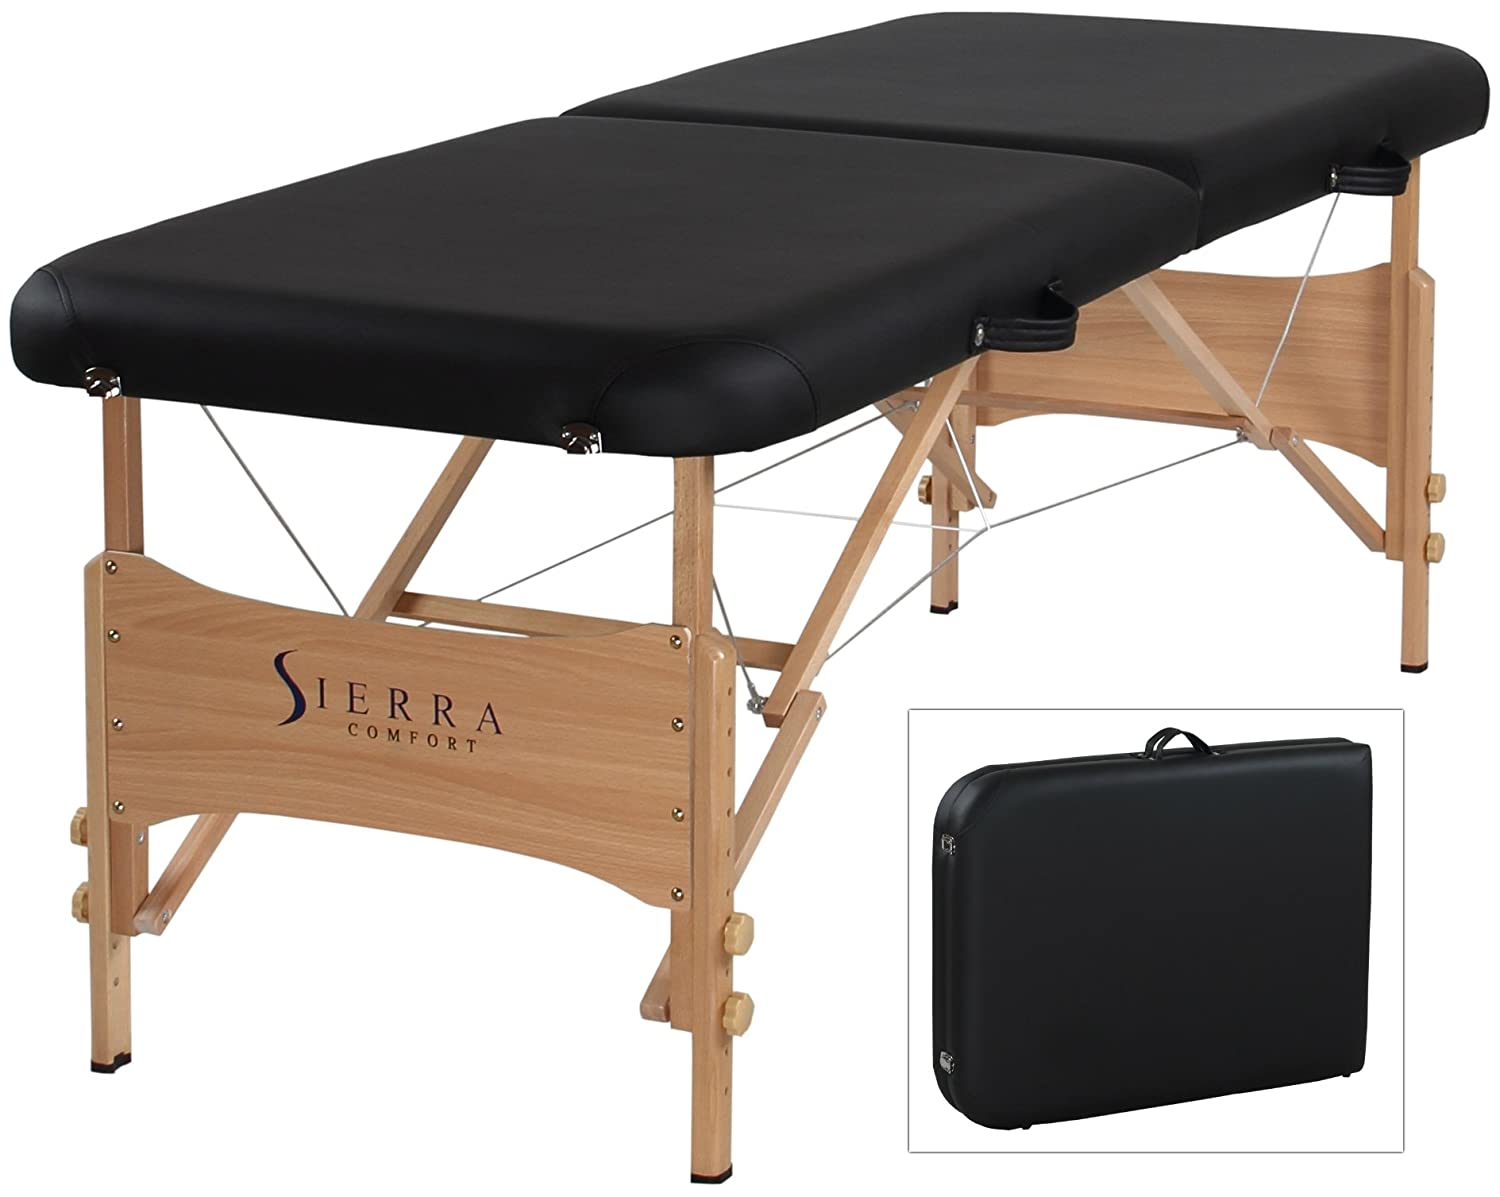 market table massage from you tableafter the portablemassage best modestamuir comforter comfort get fromthe sierra portable that can